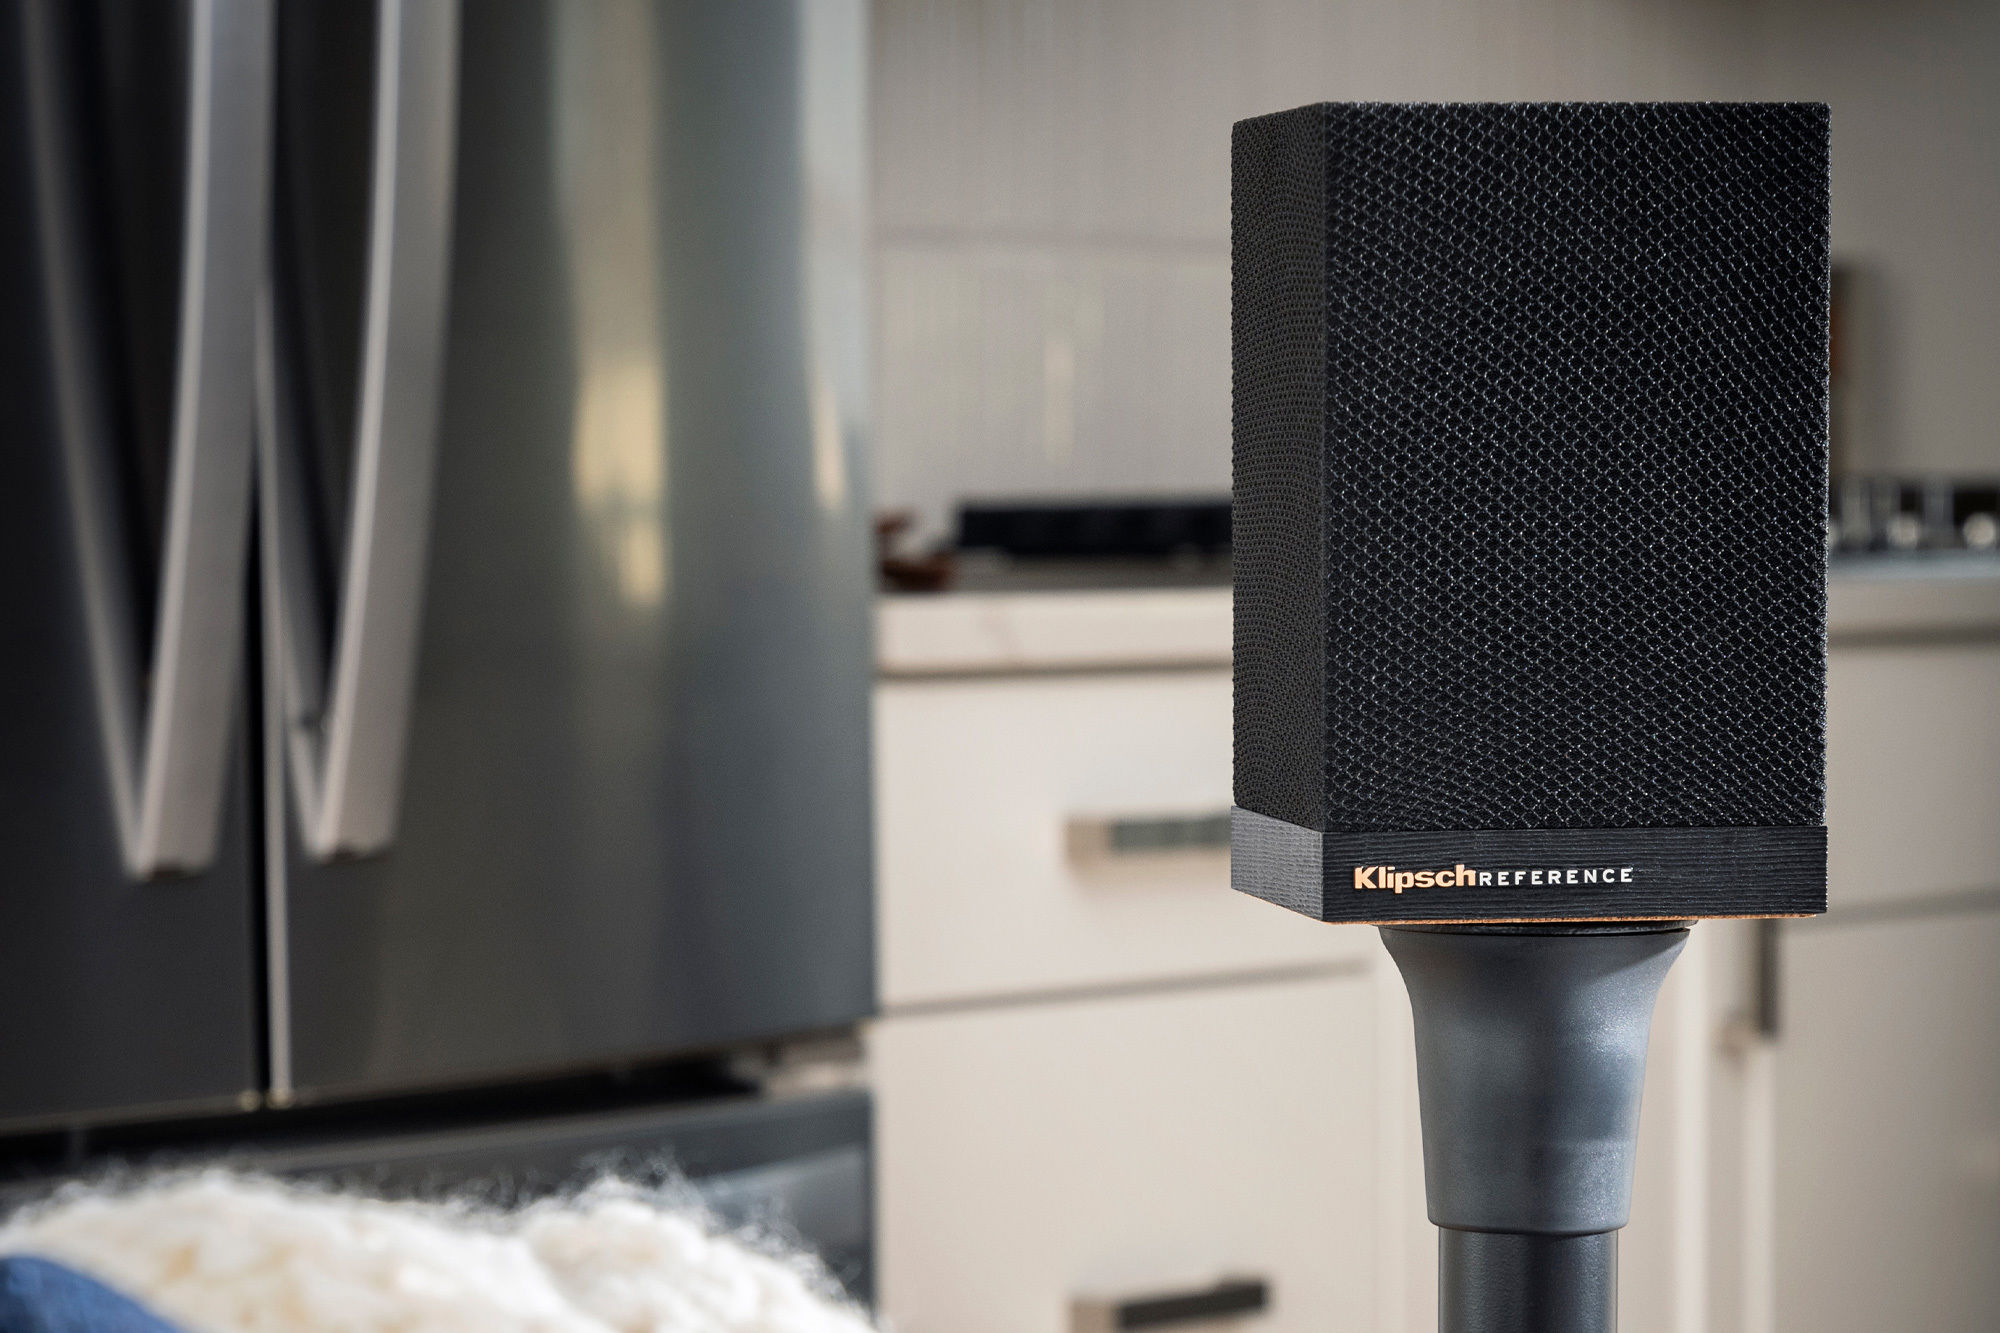 Klipsch Surround 3 Soundbar-Raumklanglautsprecher in einer Küche